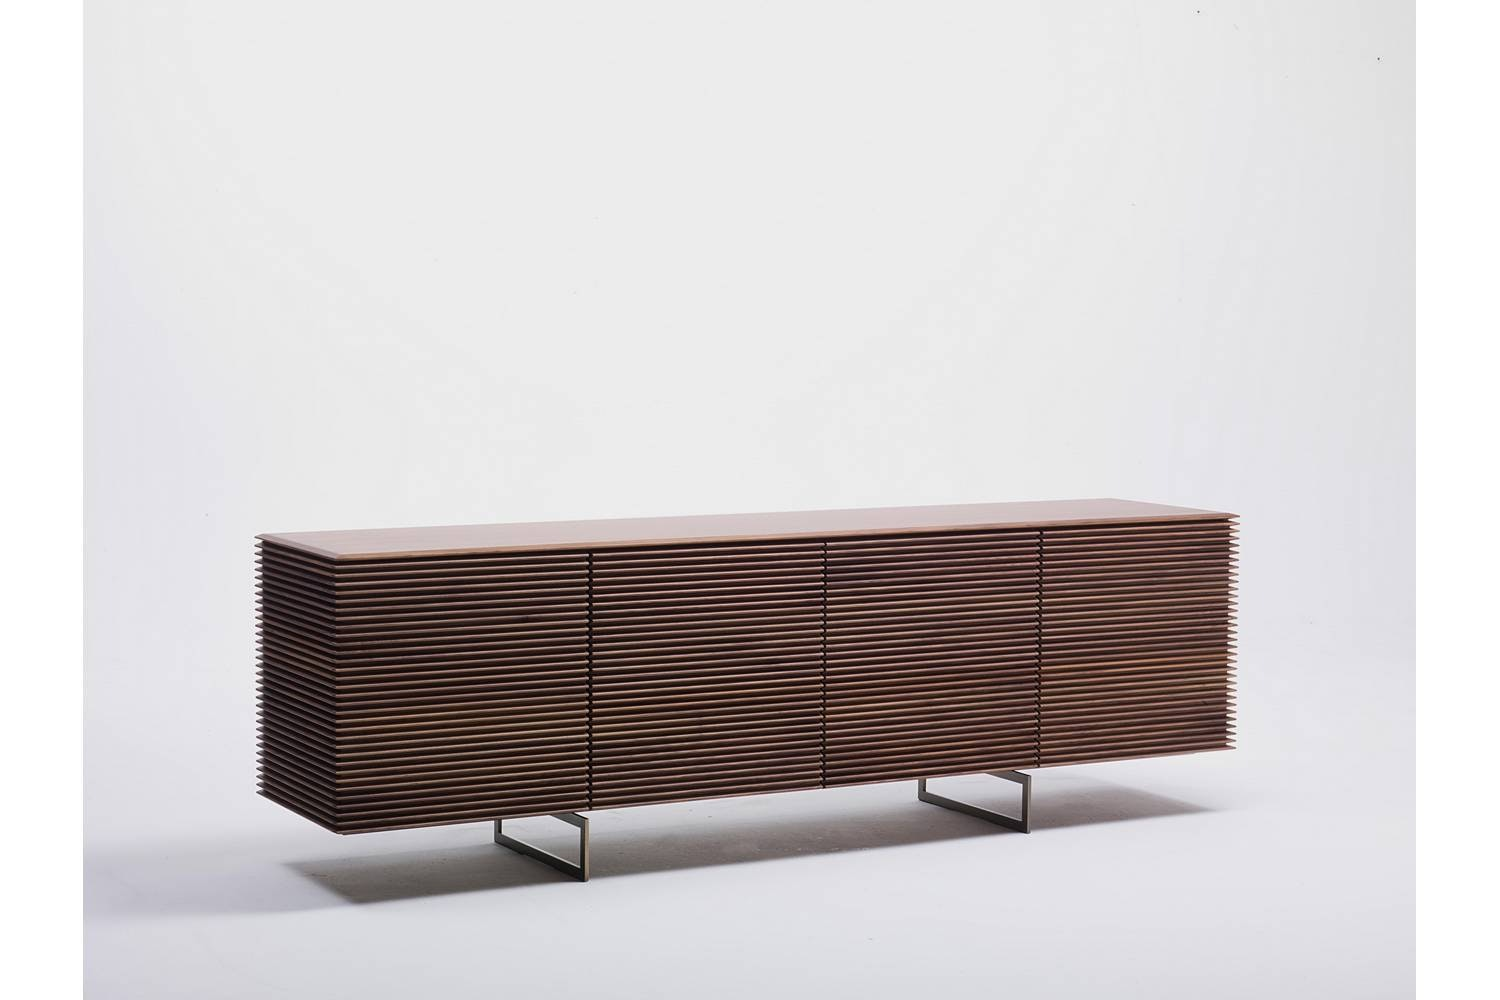 Riga Sideboard by T. Colzani for Porada